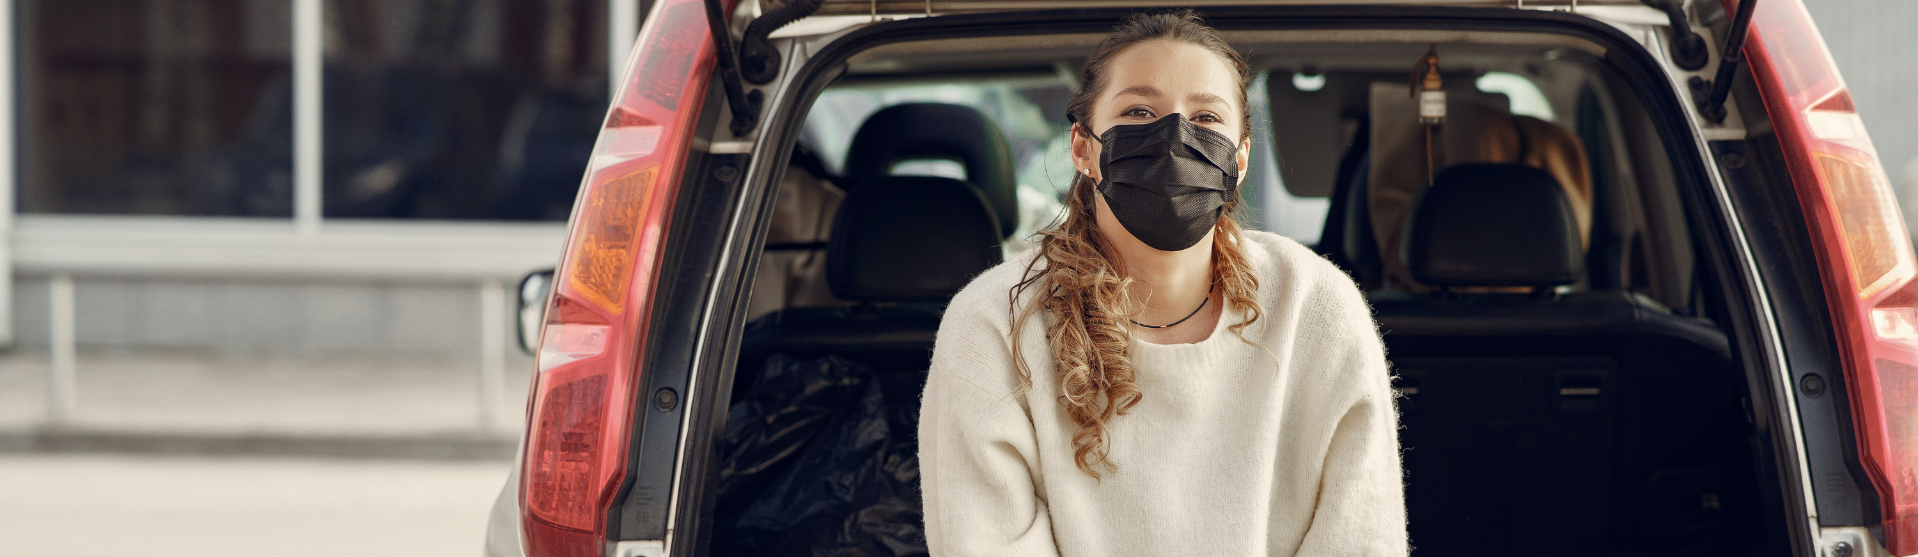 Girl with a face mask behind a car